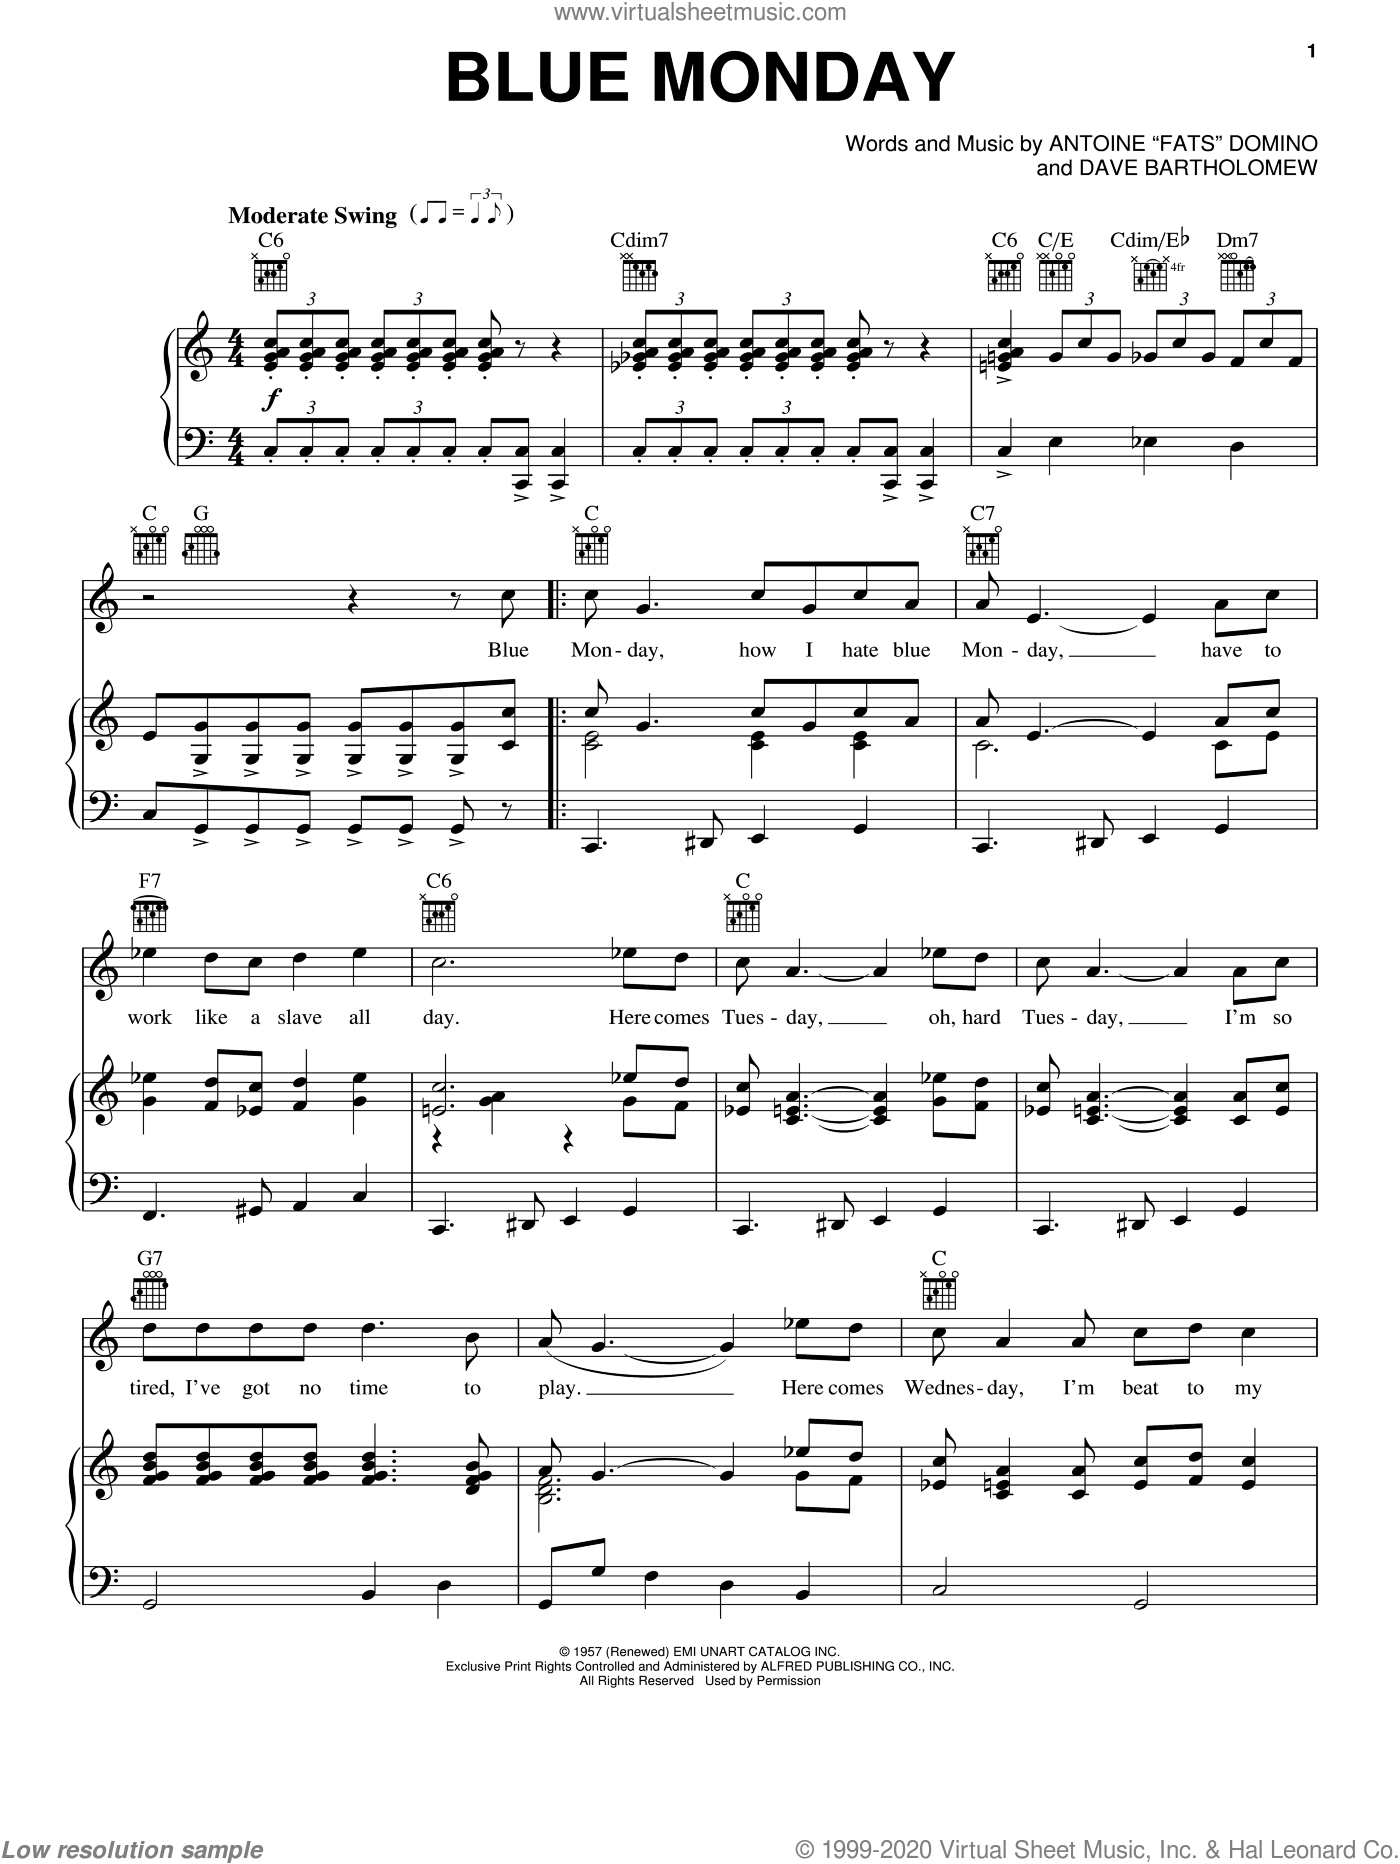 Blue Monday sheet music for voice, piano or guitar by Fats Domino and Dave Bartholomew, intermediate skill level